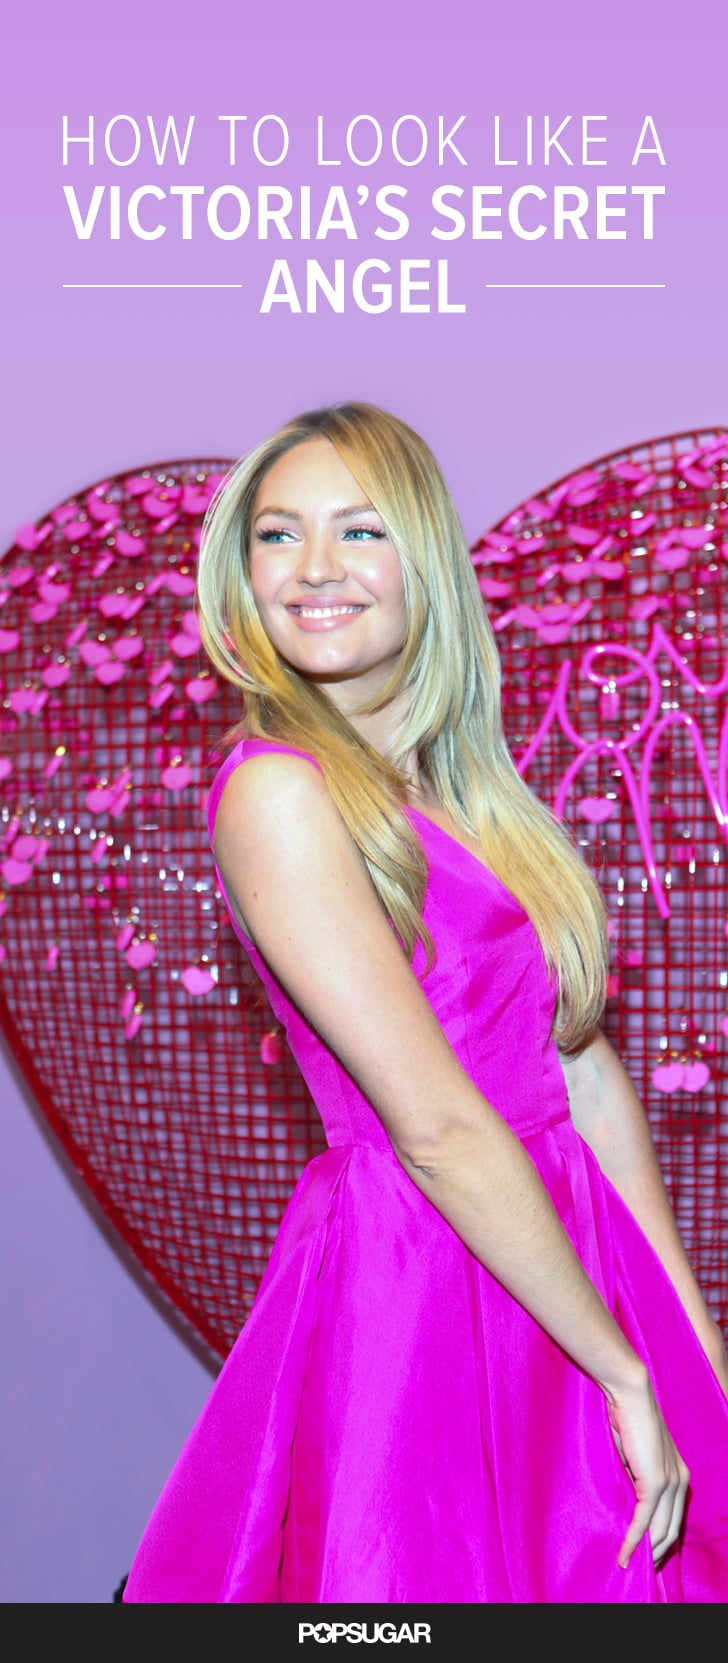 How to Look Like a Victoria's Secret Angel (No Juicing Necessary)